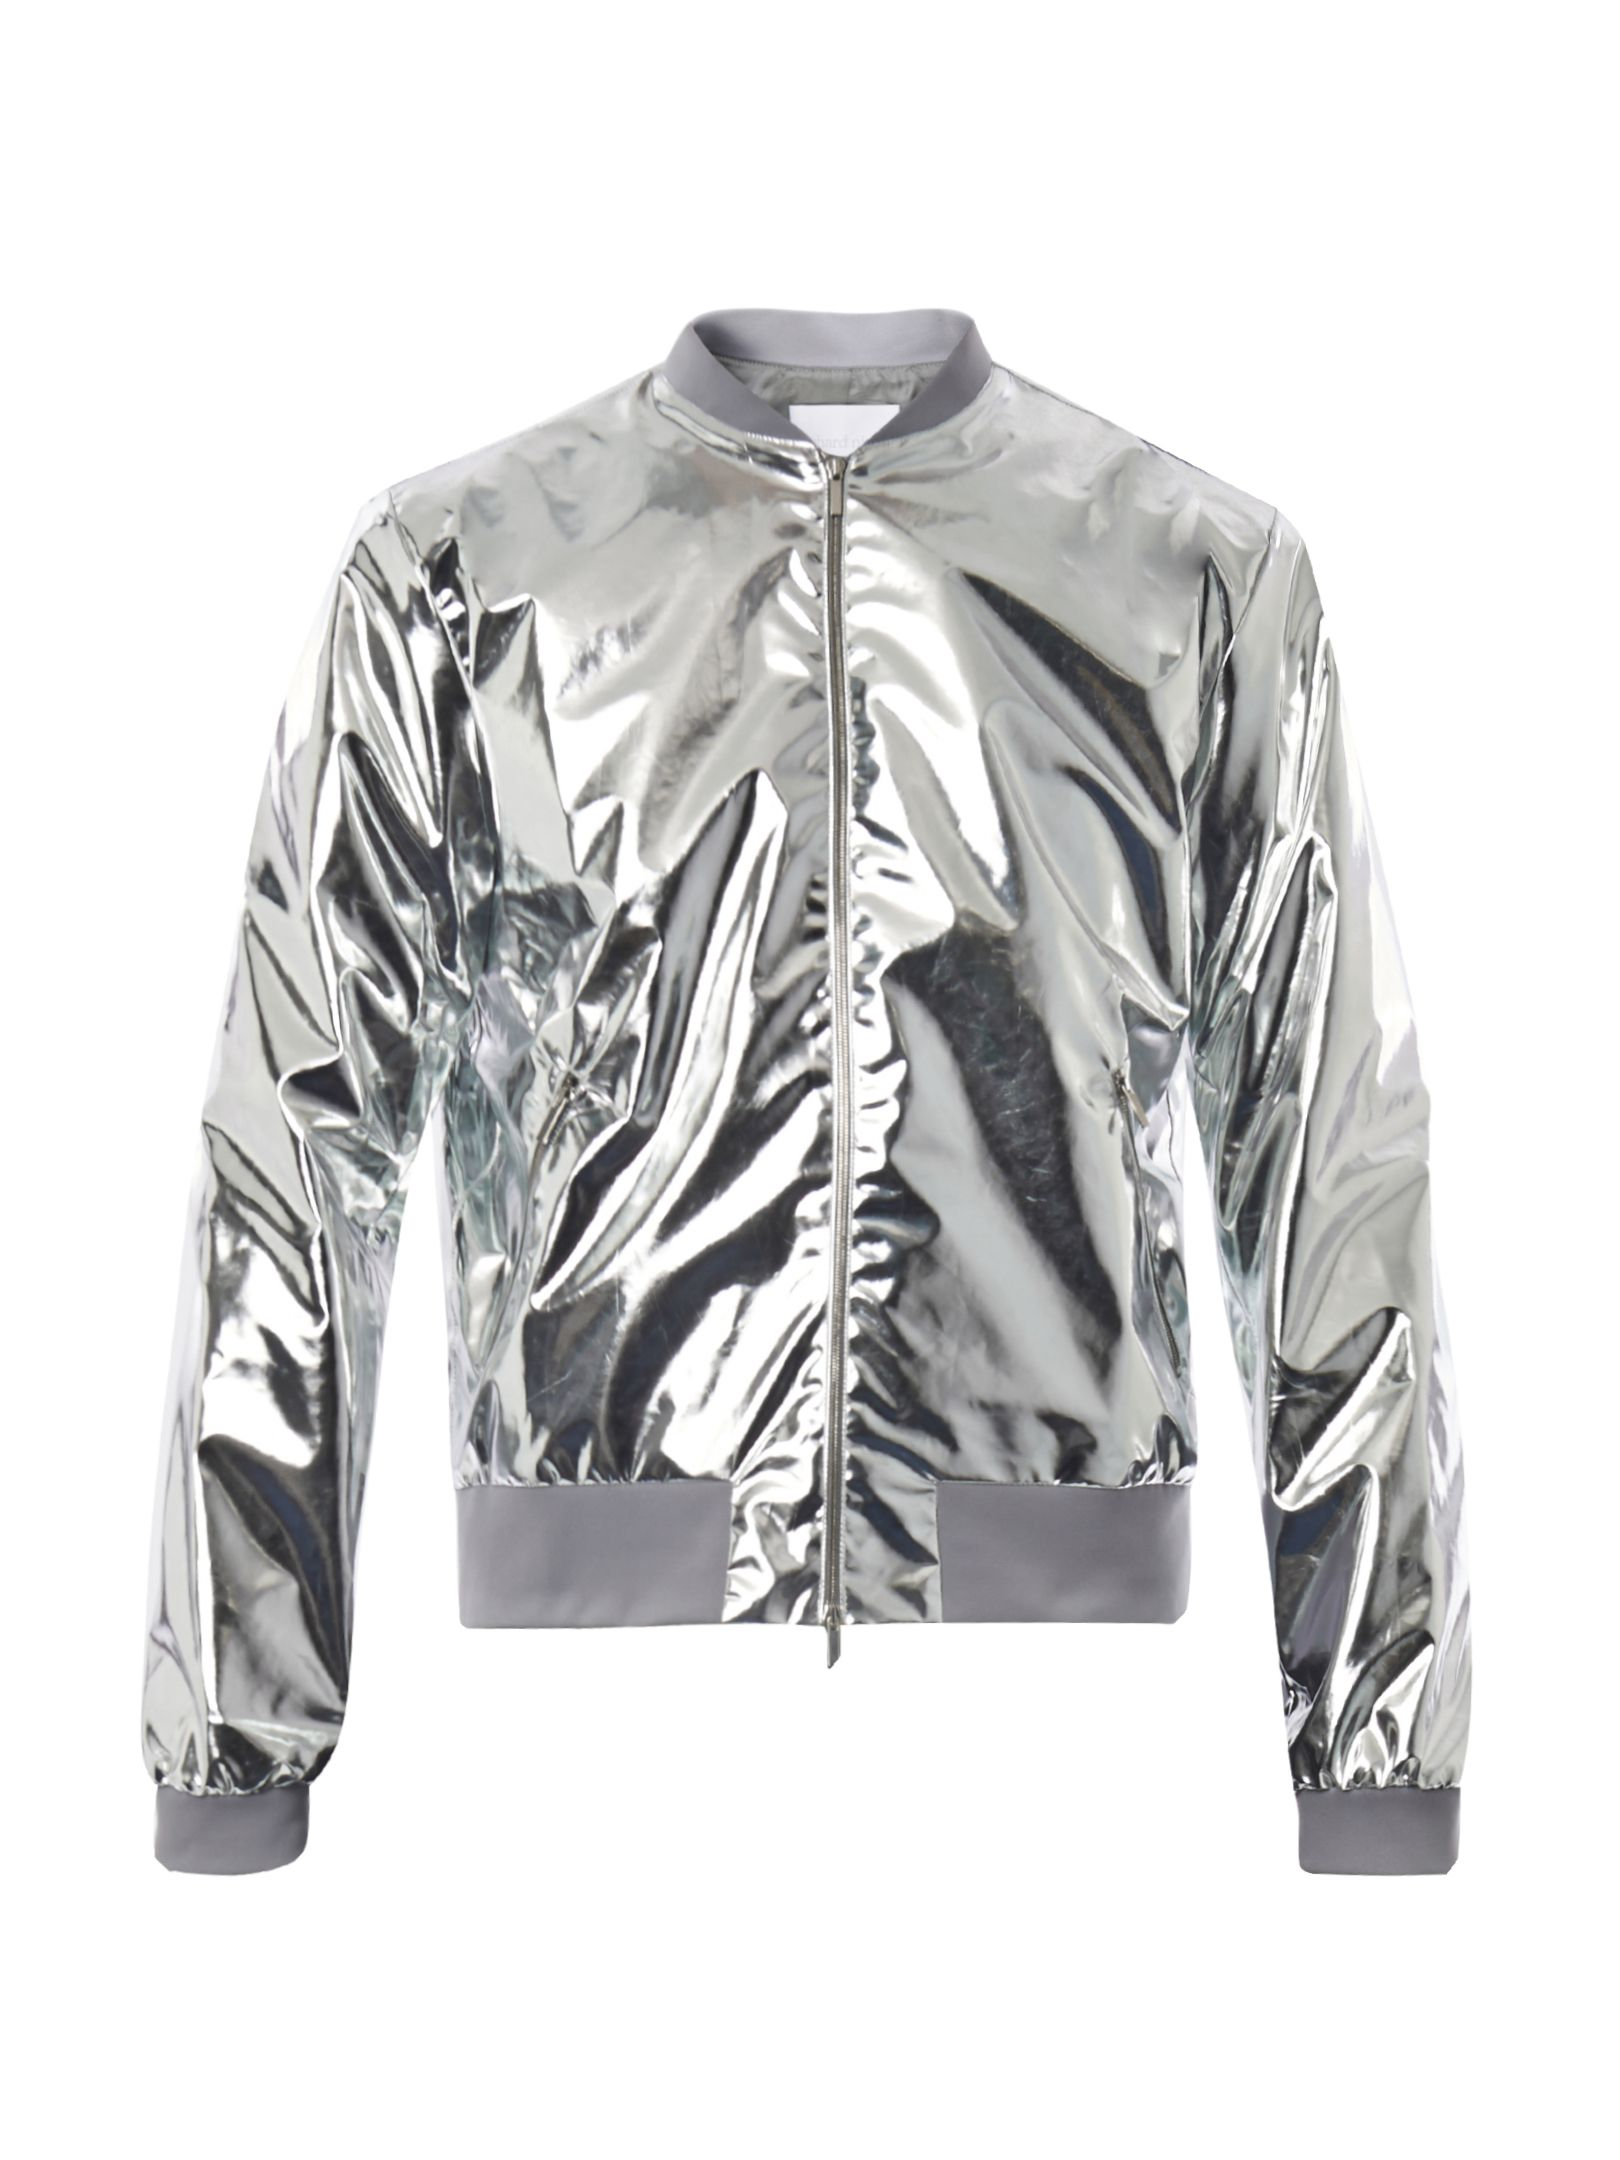 d8fbee378 silver foil bomber Silver Bomber Jacket, Bomber Jacket Men, Bomber Jackets,  Silver Metallic